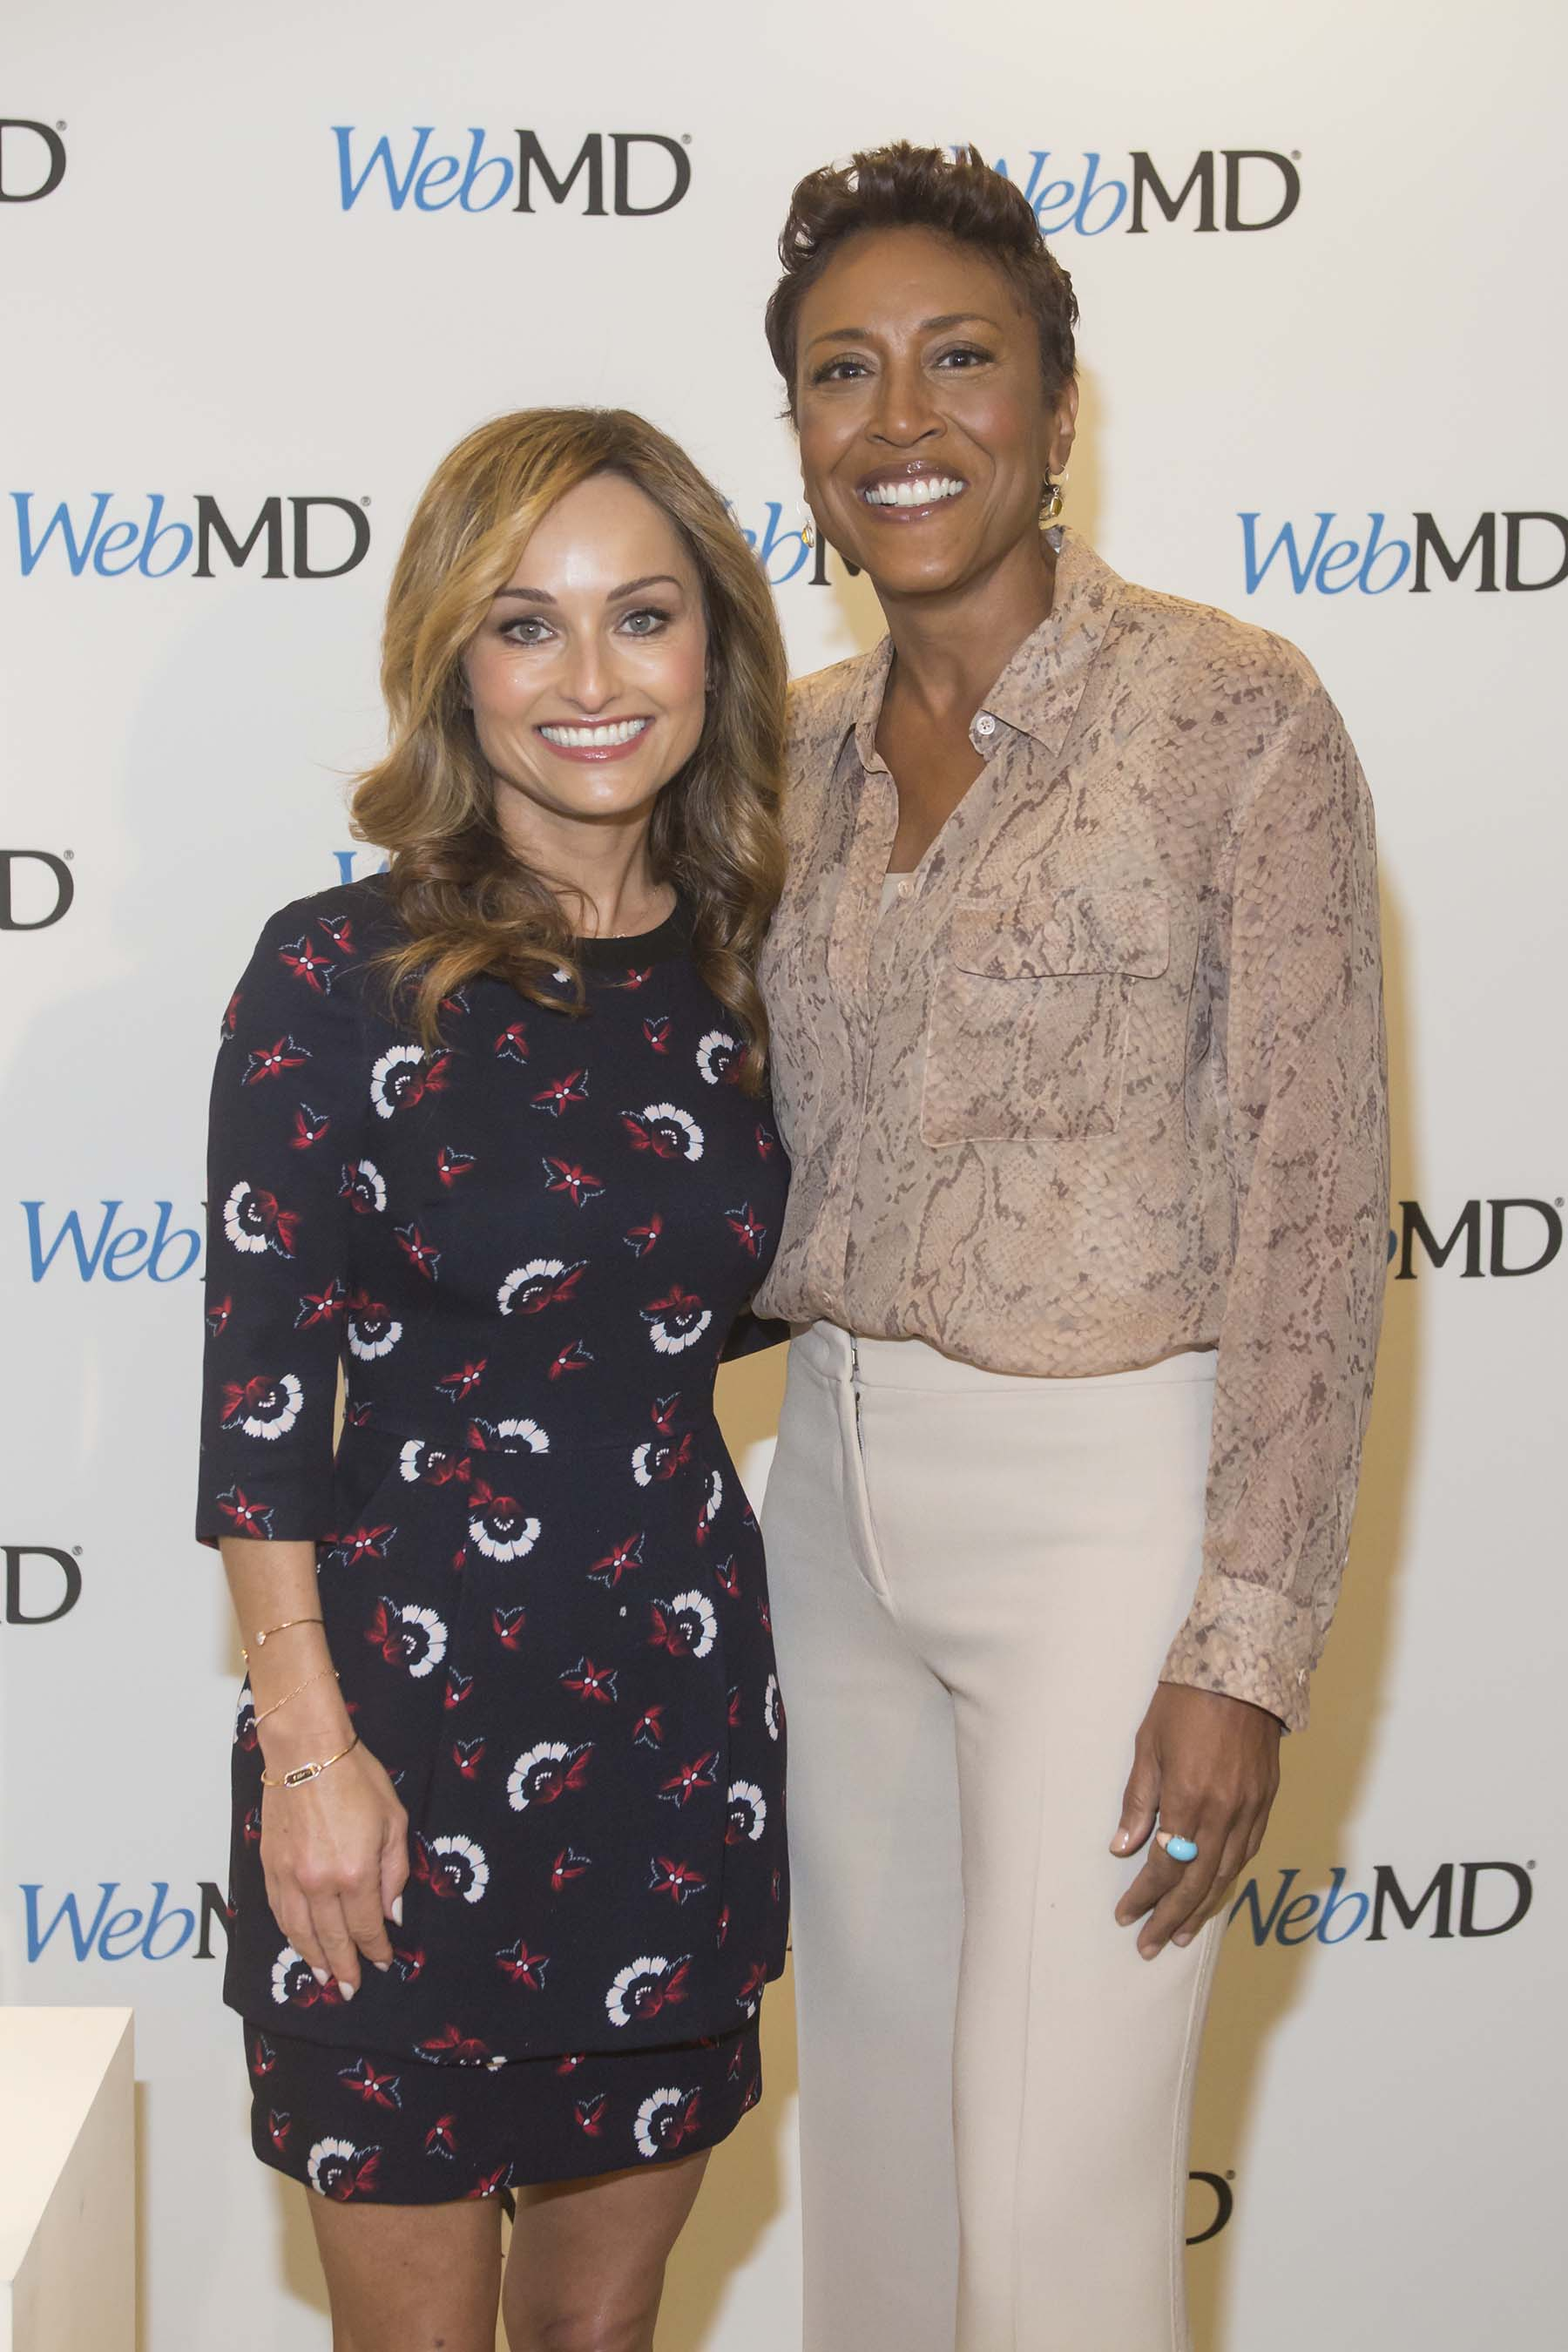 Giada De Laurentiis and Robin Roberts at WebMD's first-ever Digital Content NewFront presentation in New York City.